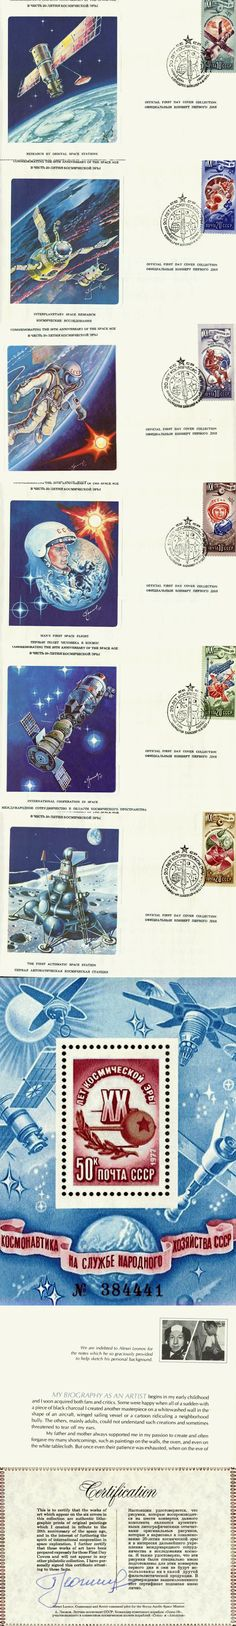 USSR - All contents of The Franklin Philatelic Society Bound Collector's Signed Limited Edition ( of the Official Collection of First Day Covers Commemorating the Anniversary of the Space Age. First Day Covers, Space Age, 20th Anniversary, Contents, Postage Stamps, Collection, 20th Birthday, Stamps